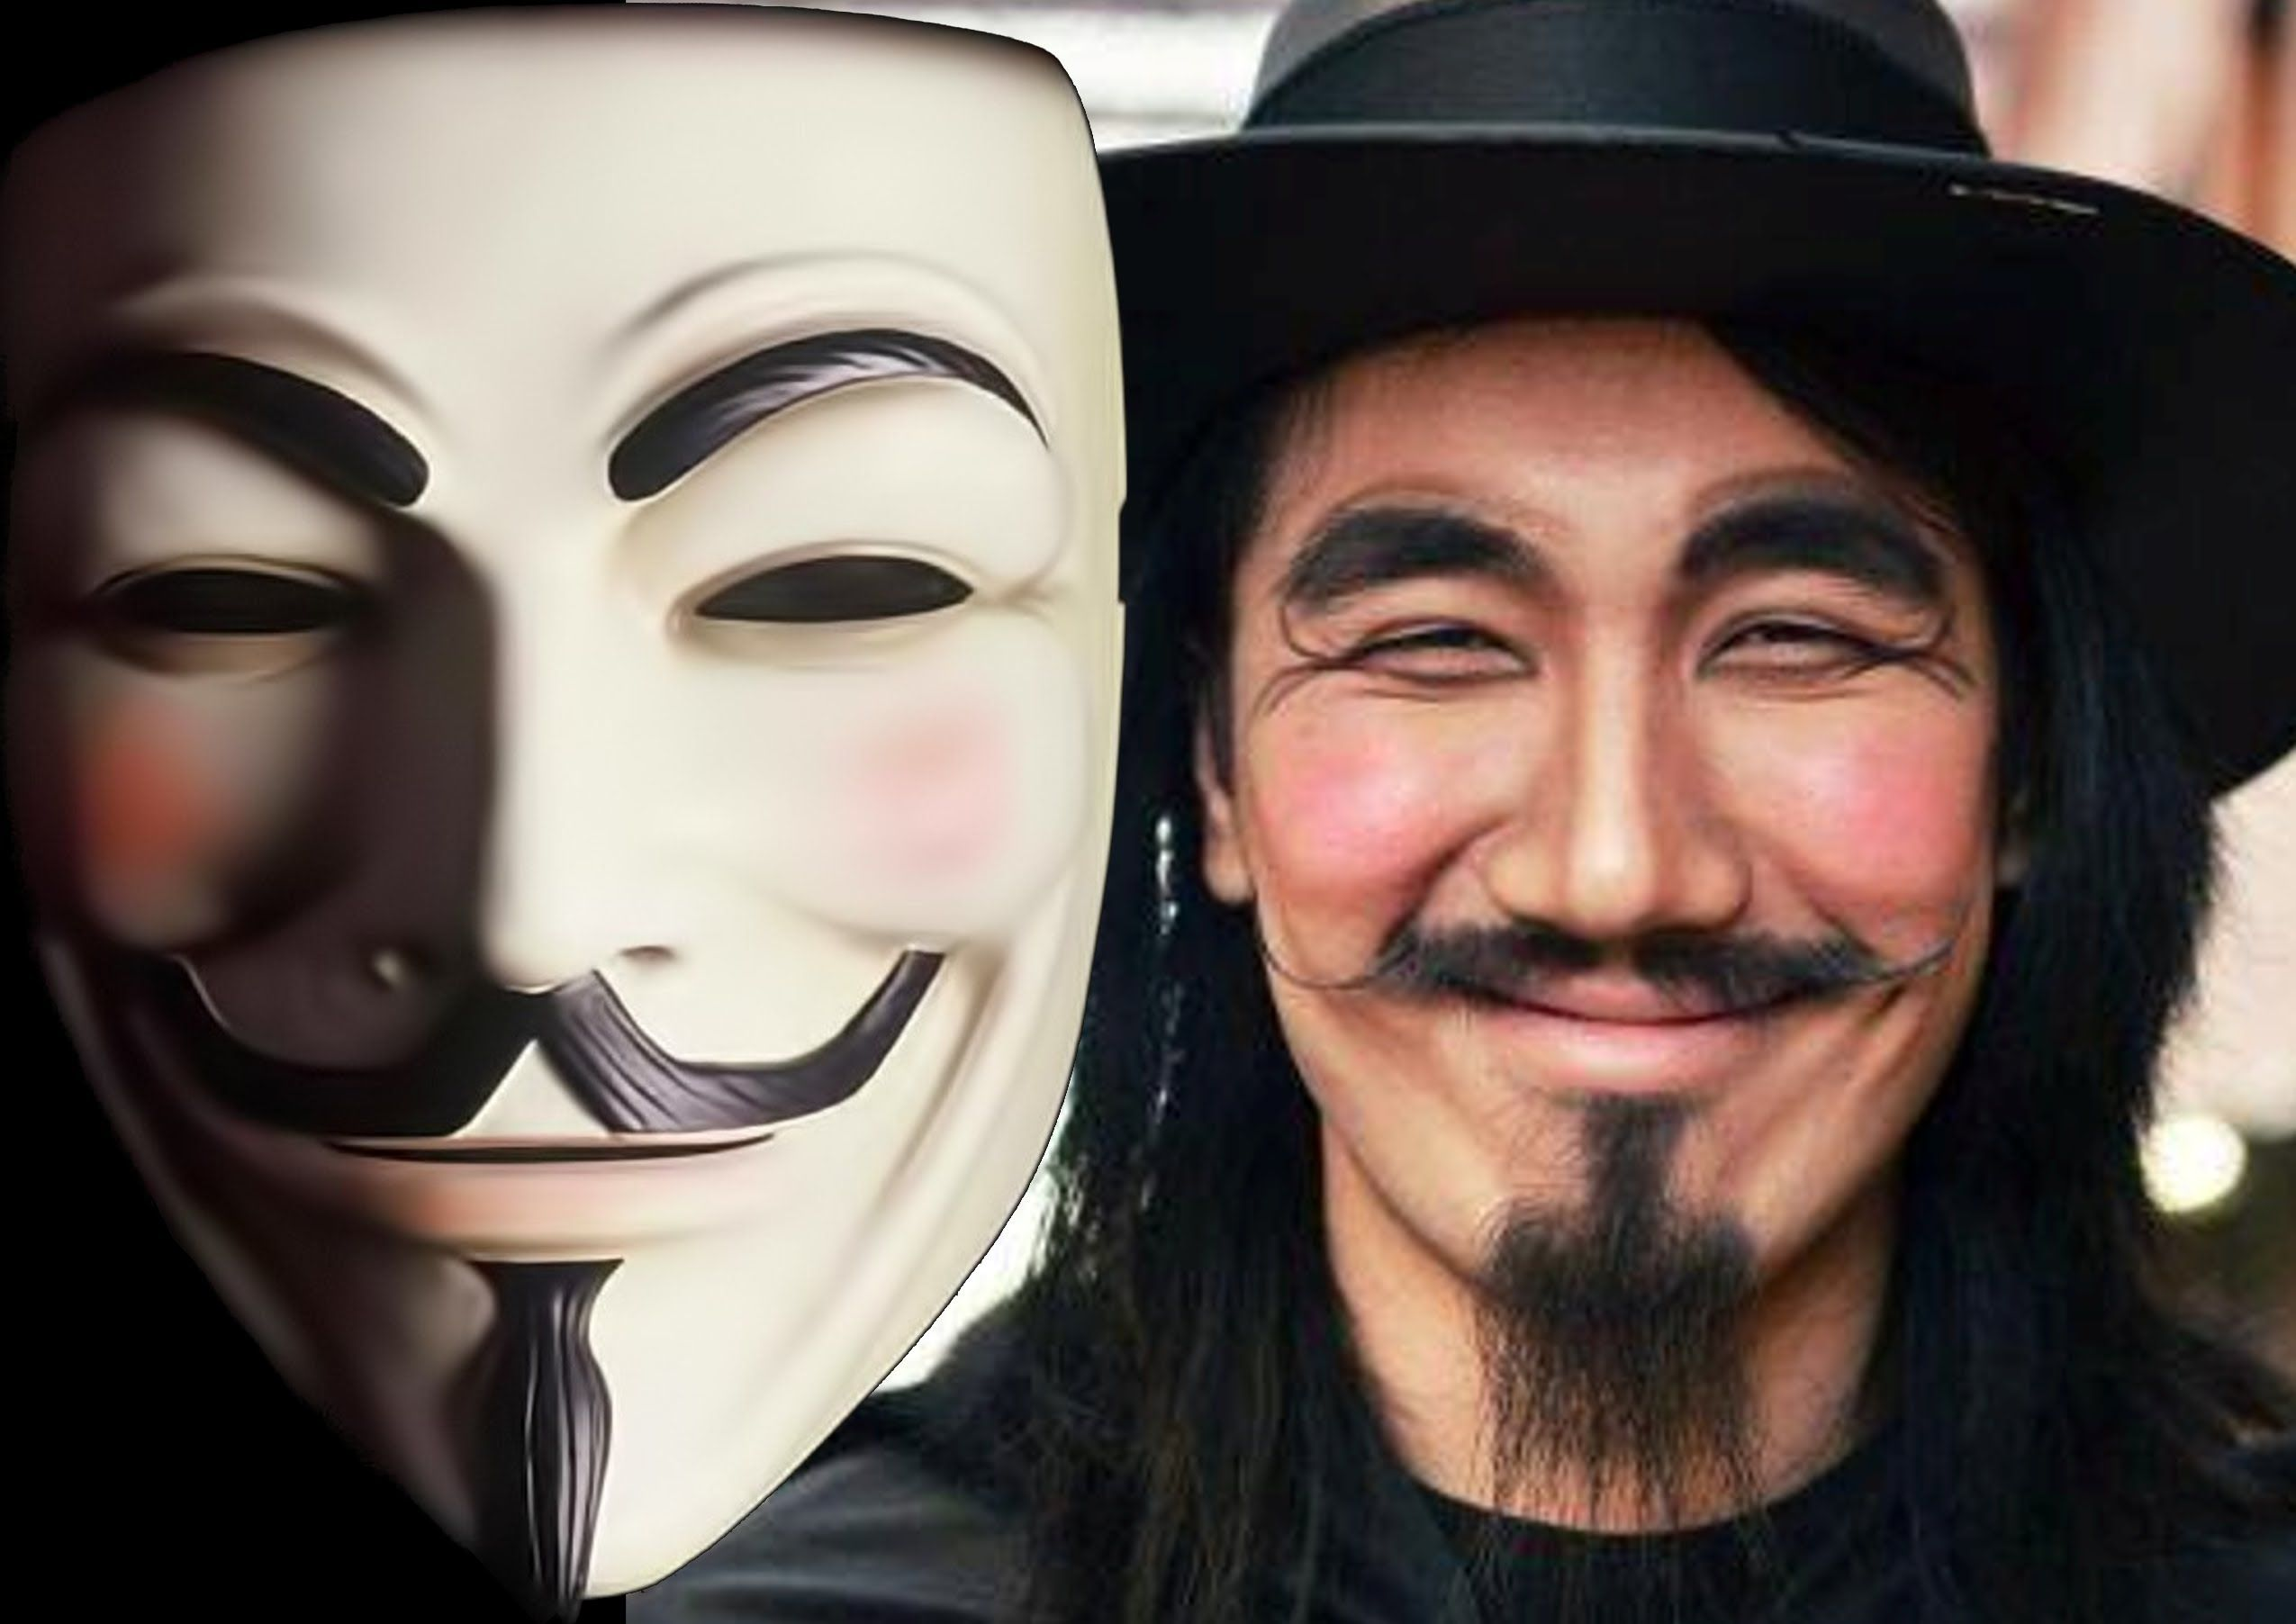 Guy Fawkes Face Paint - How To Do A Guy